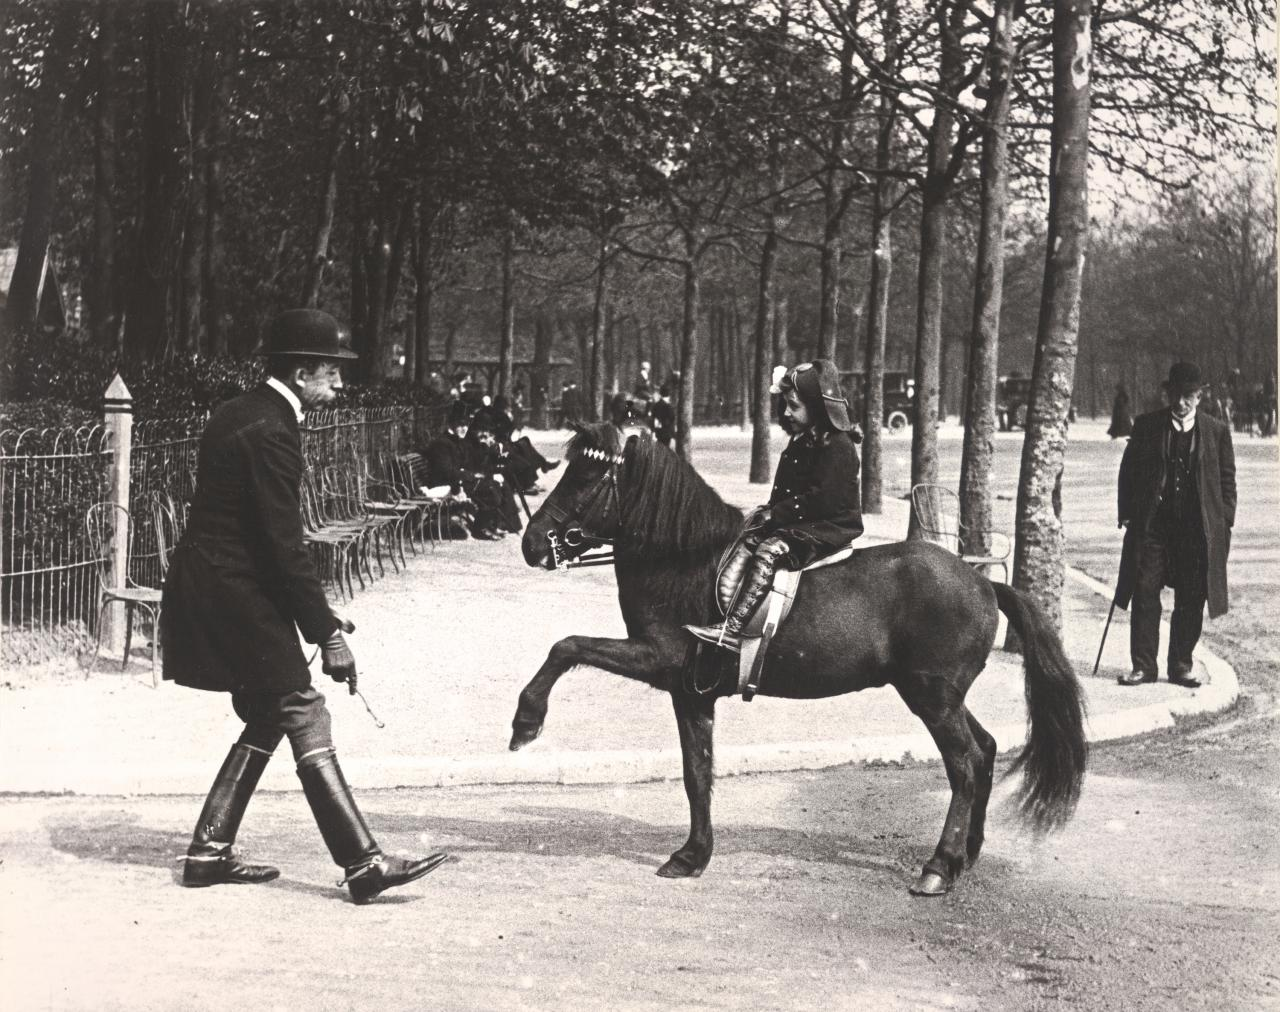 Could Marcel Proust's Gilberte be this little equestrienne on the rue des Acacias?